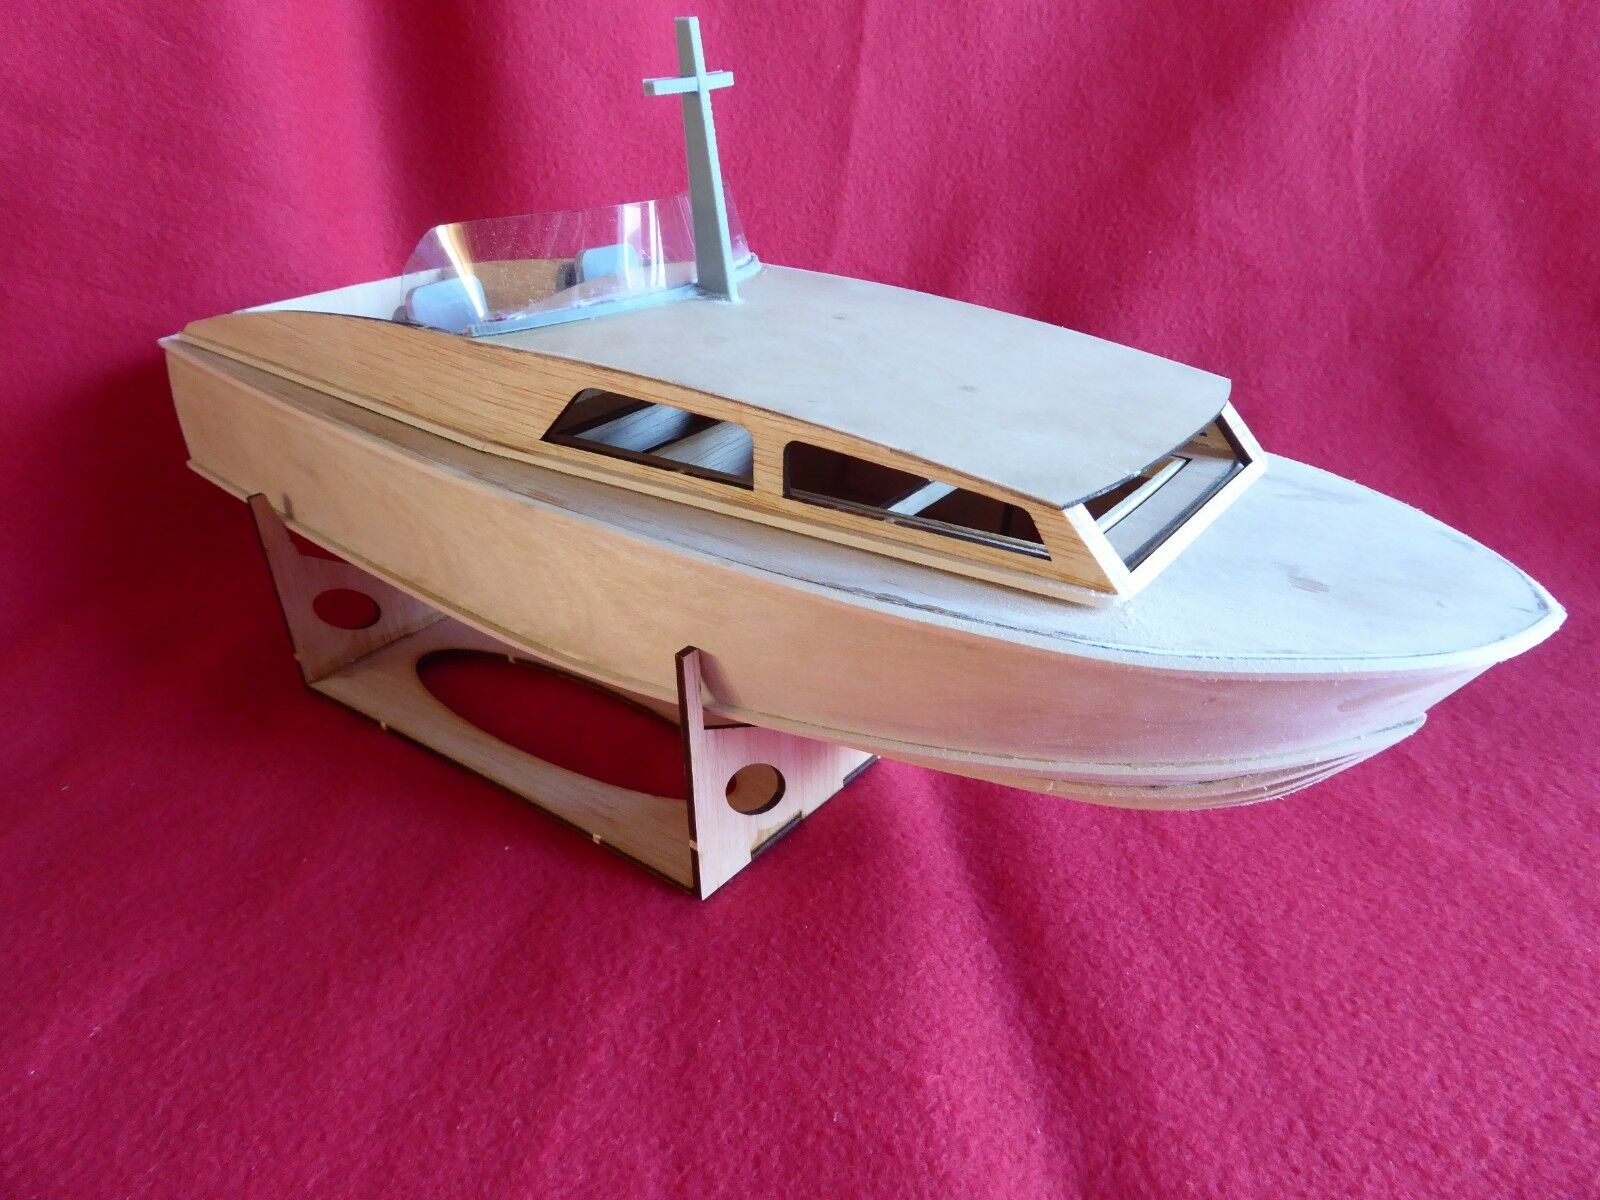 Off shore Racer, Wooden model boat kit. 450mm long.